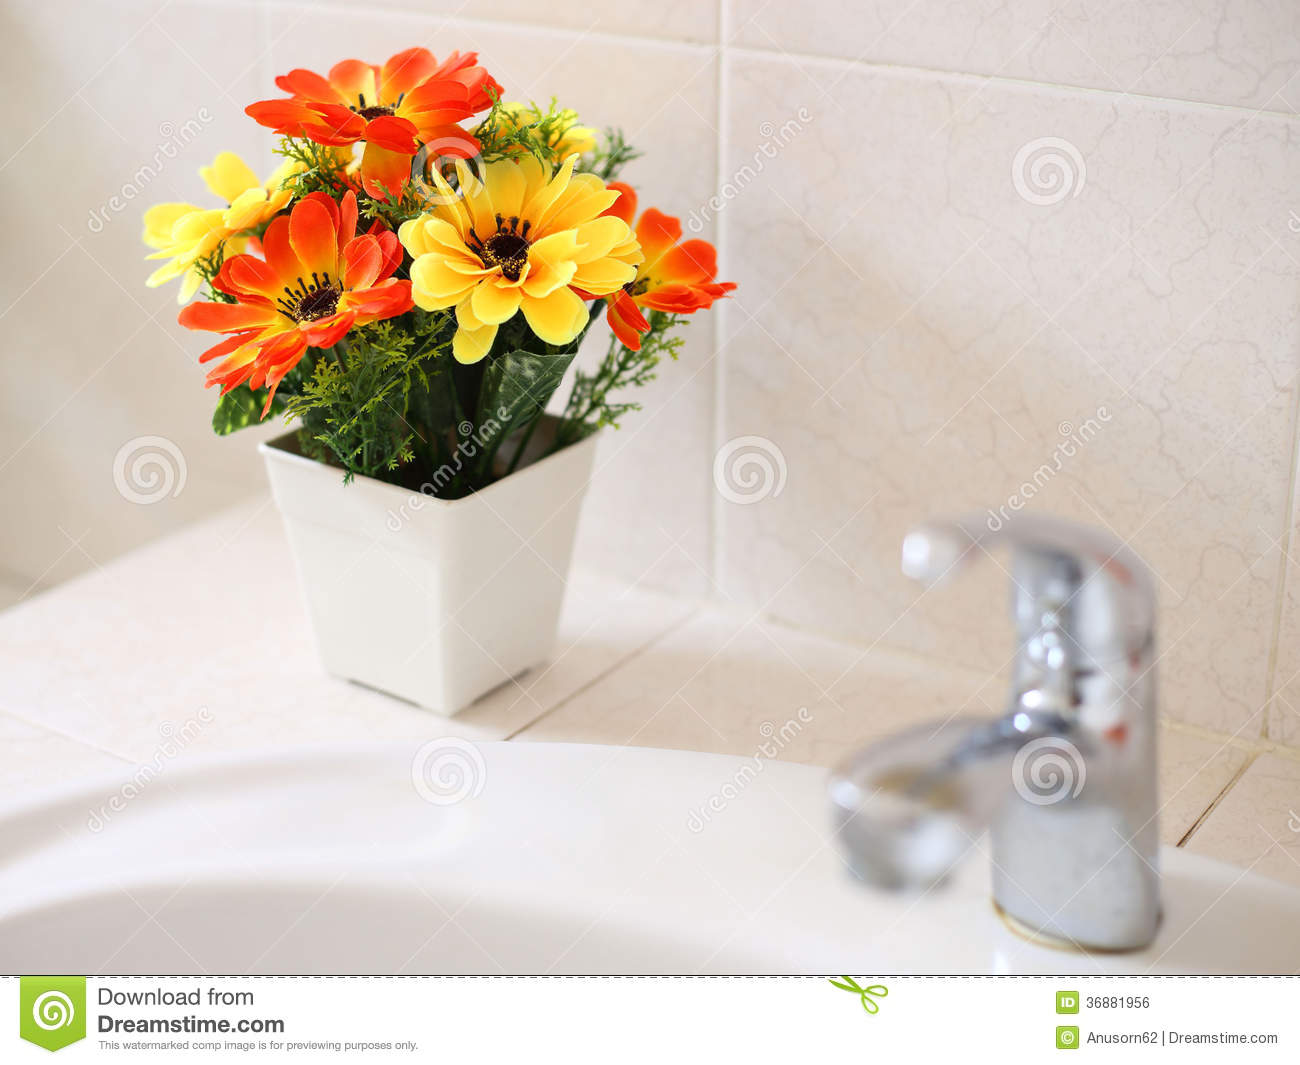 Artificial flowers at wash basin stock photo image of decoration download artificial flowers at wash basin stock photo image of decoration inside 36881956 mightylinksfo